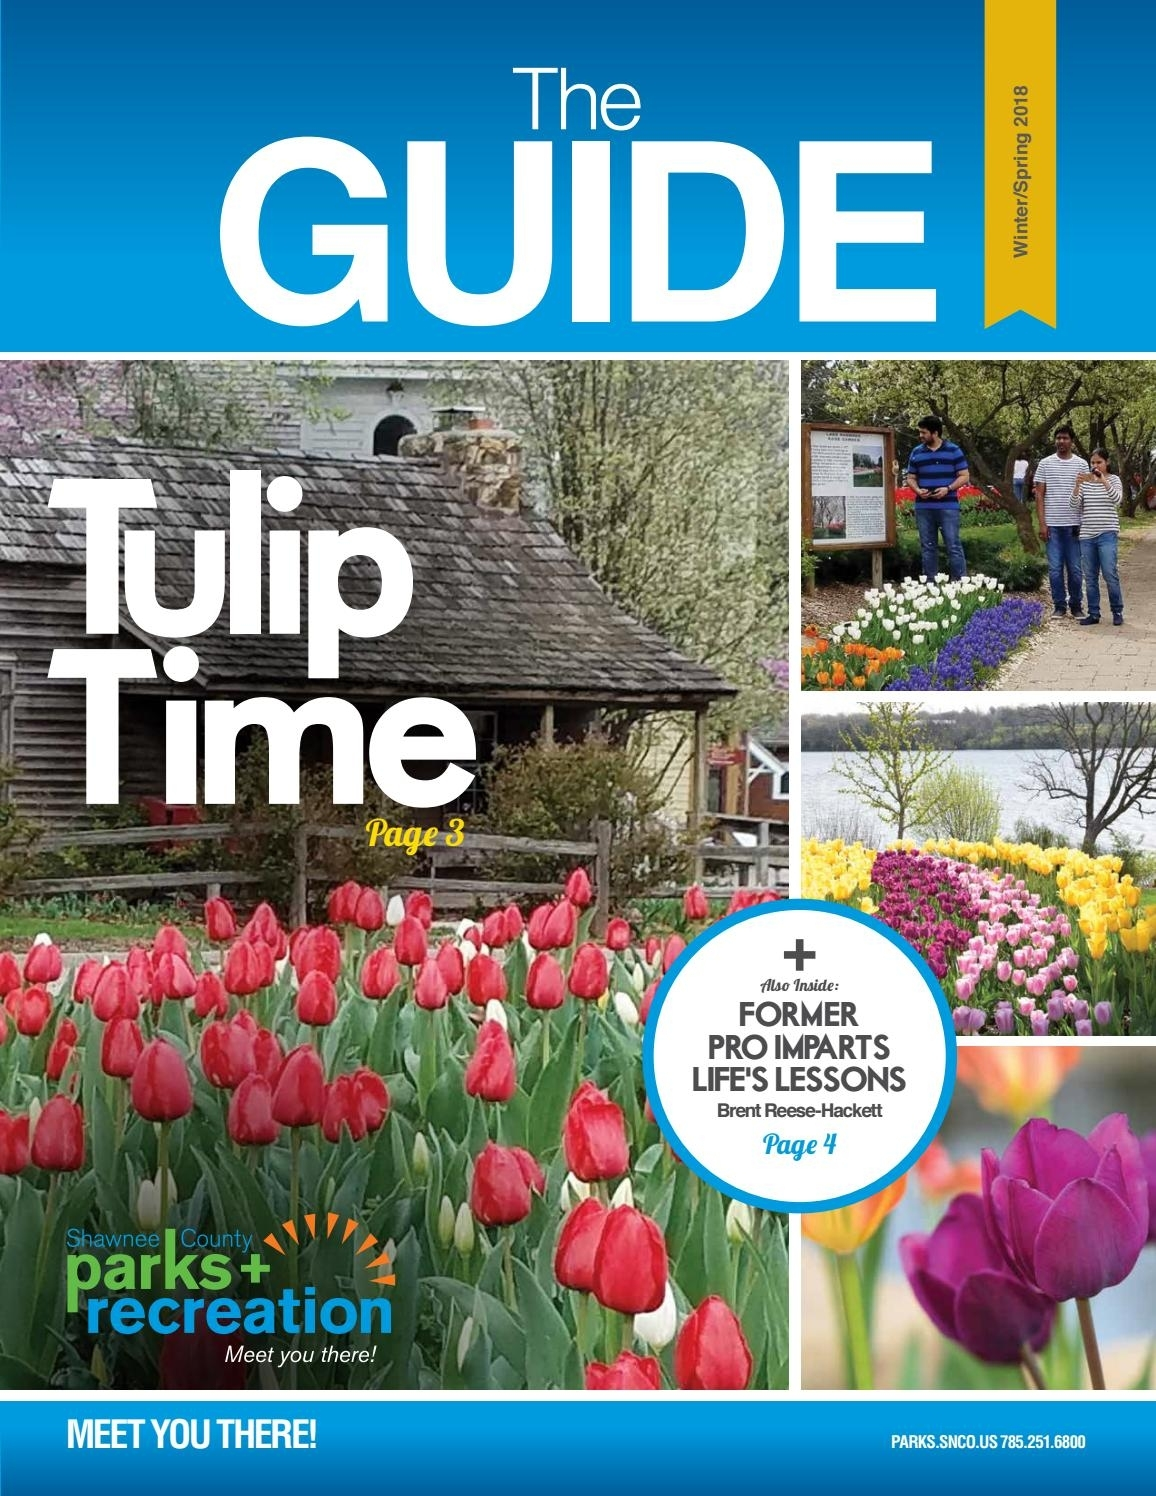 The Guide 2018 Winter Parks And Recreation By Shawnee County - Issuu within Garden House Lake Shawnee Topeka Ks